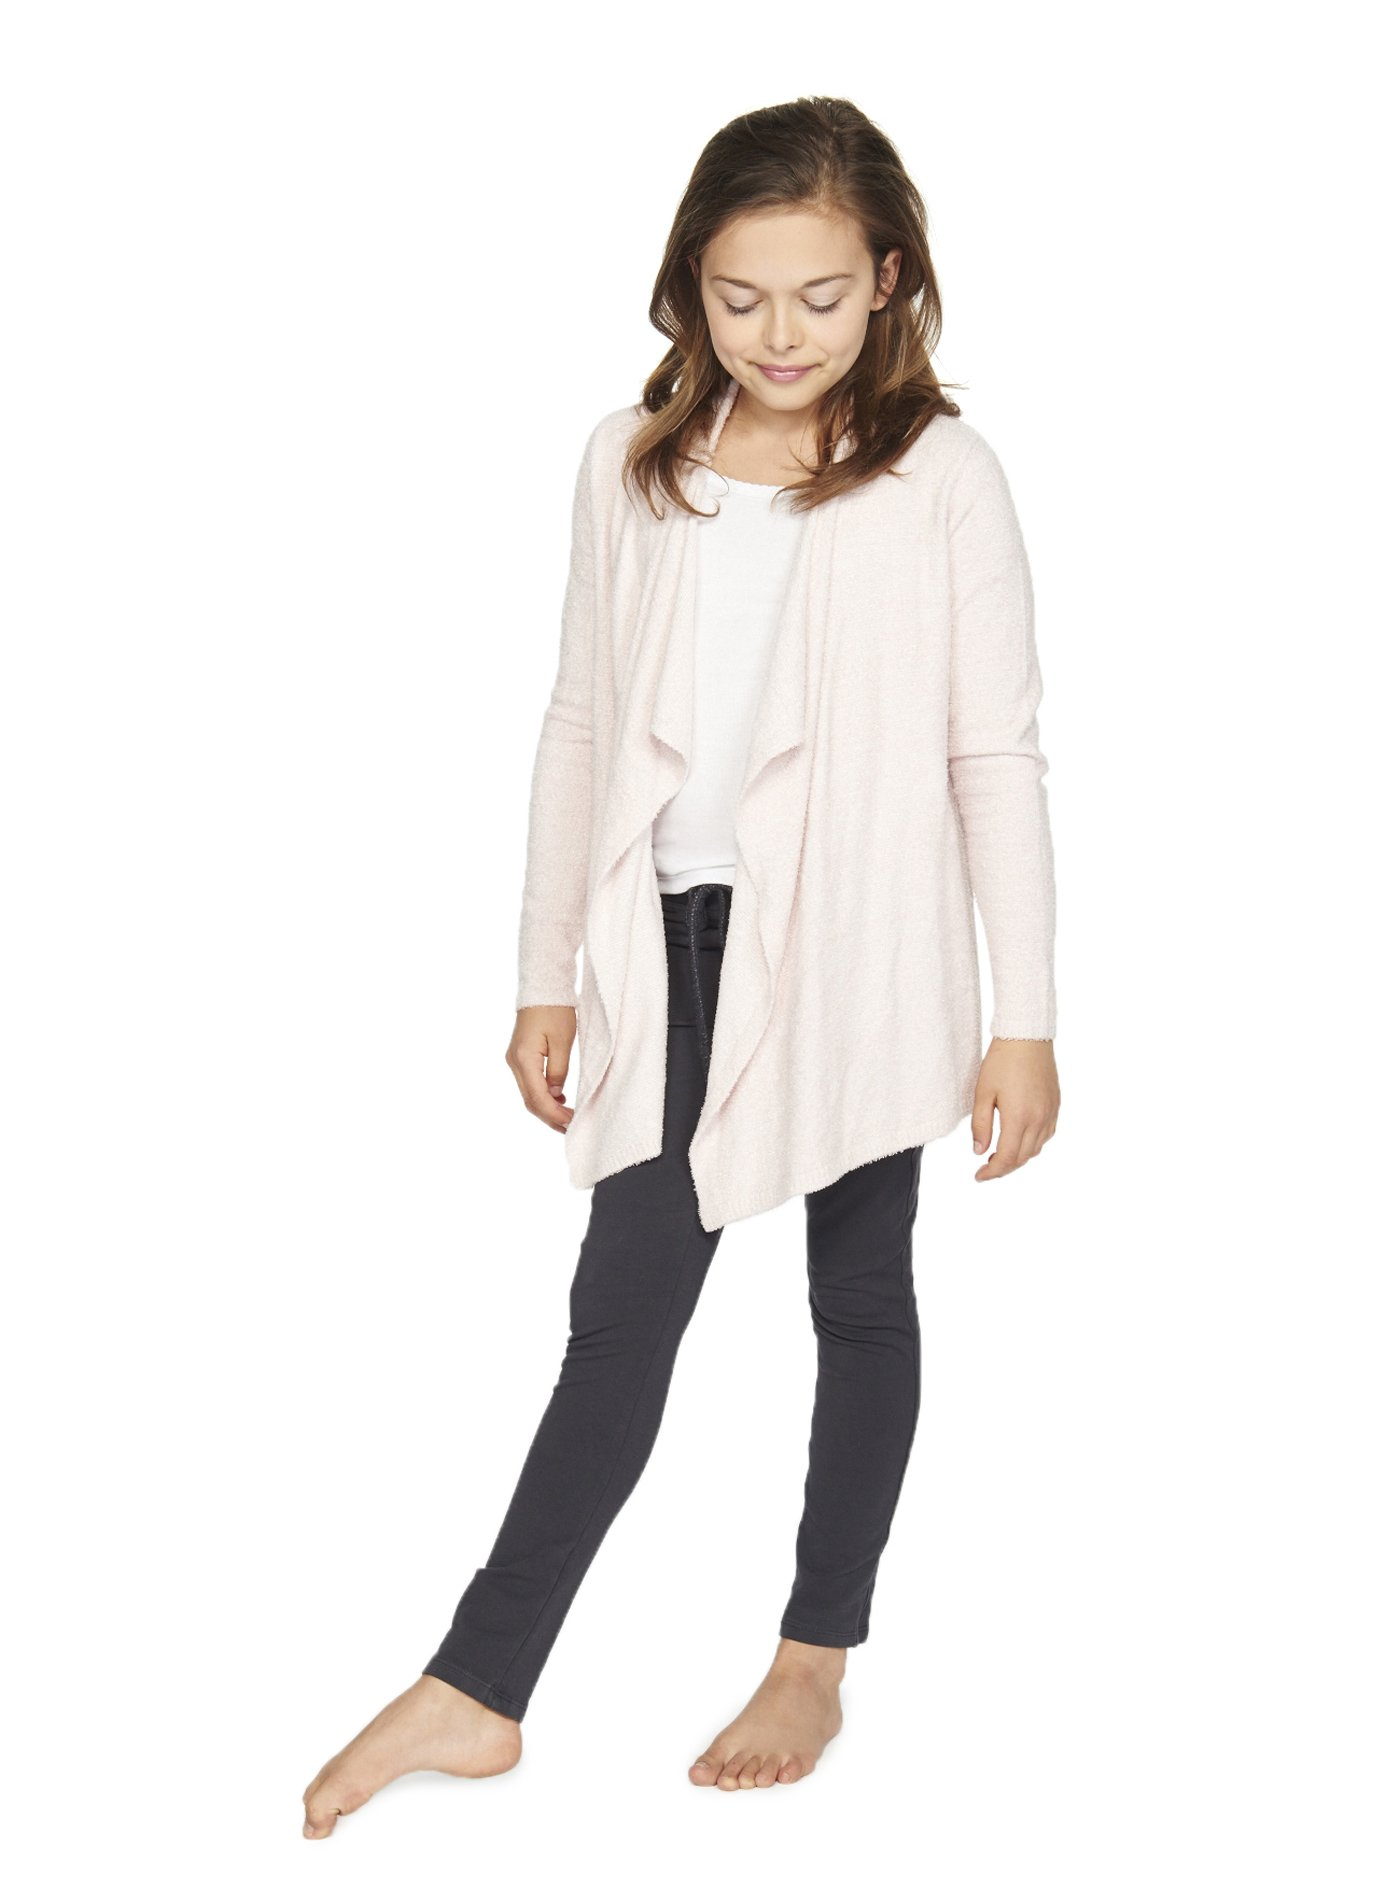 BAREFOOT DREAMS BCL YOUTH HEATHERED CALYPSO WRAP (10-12, Petal/ Pearl)